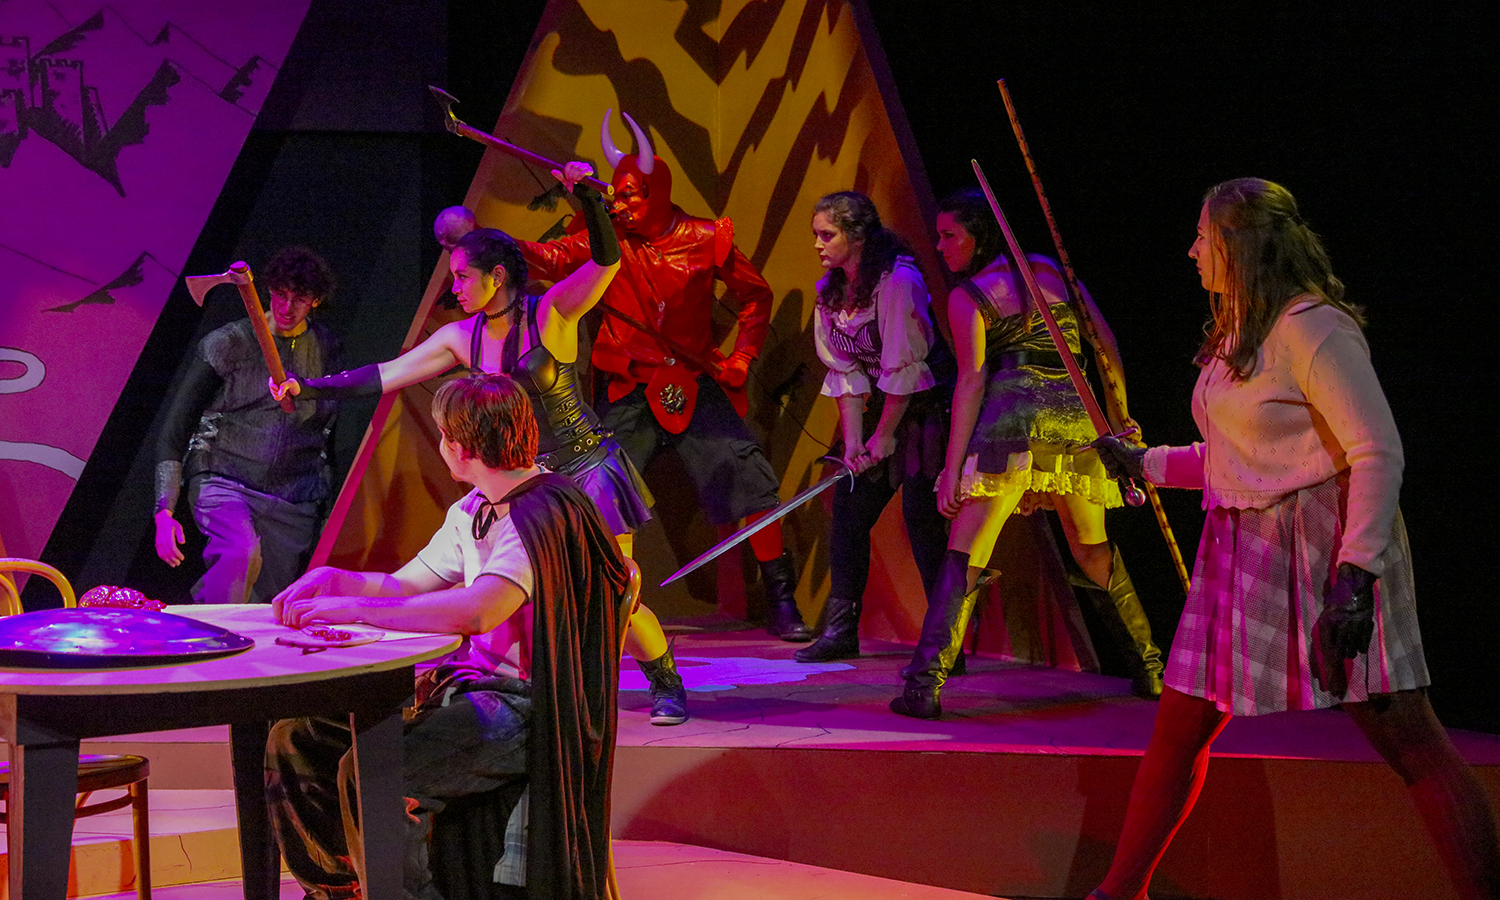 Directed by Assistant Professor of Theatre Chris Woodworth and written by playwright Qui Nguyen, âShe Kills Monstersâ explores the world of role-playing before the technology boom, through the narration of a geek heroine.